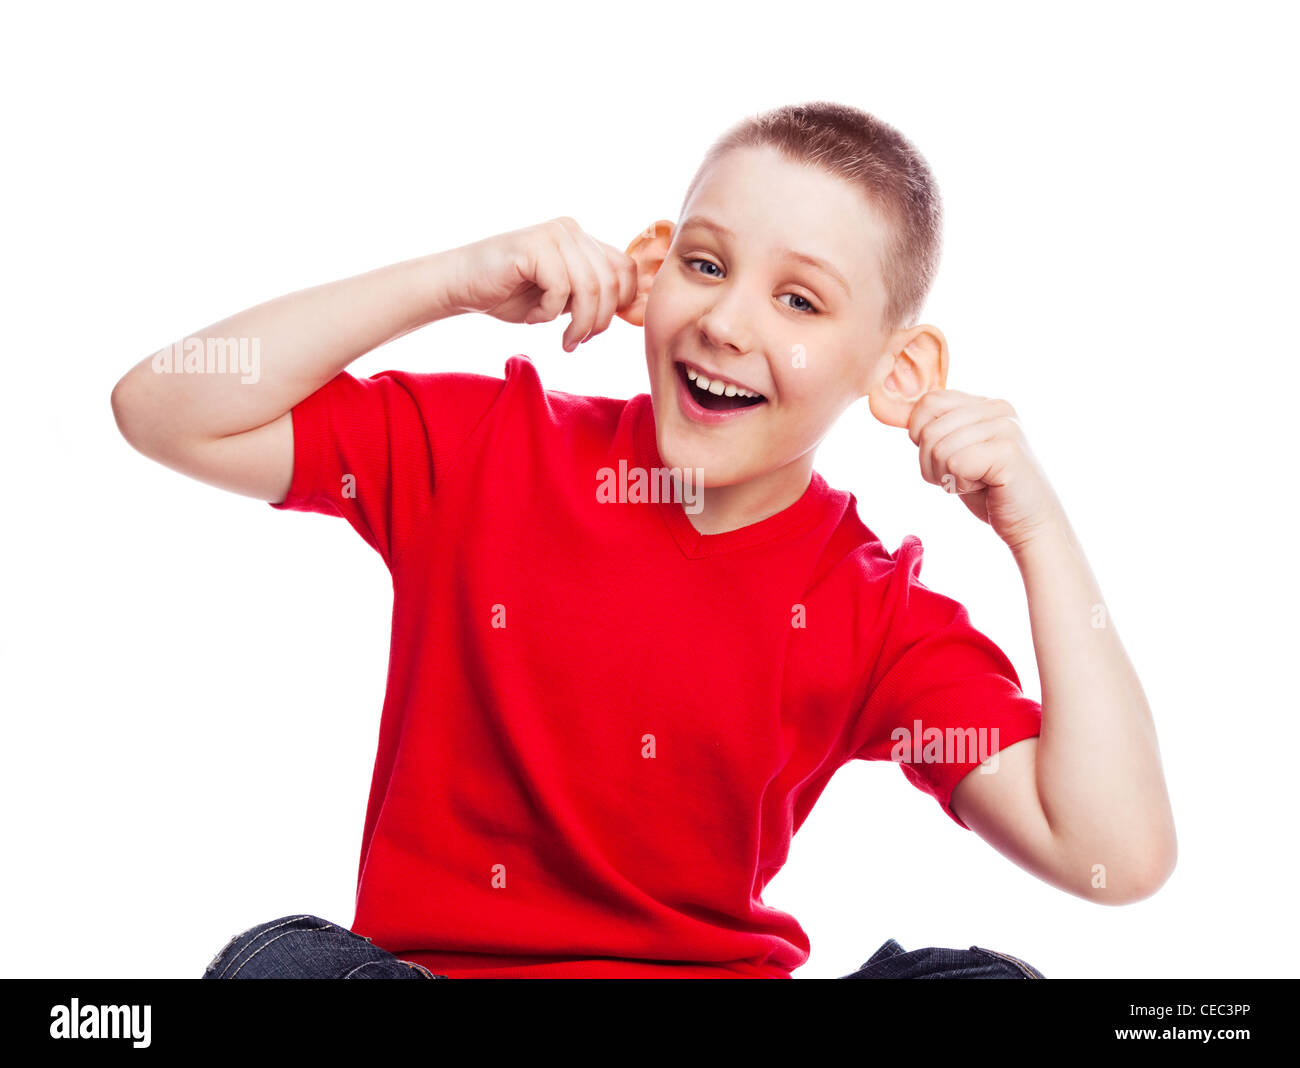 naughty child making faces, isolated against white background Stock Photo